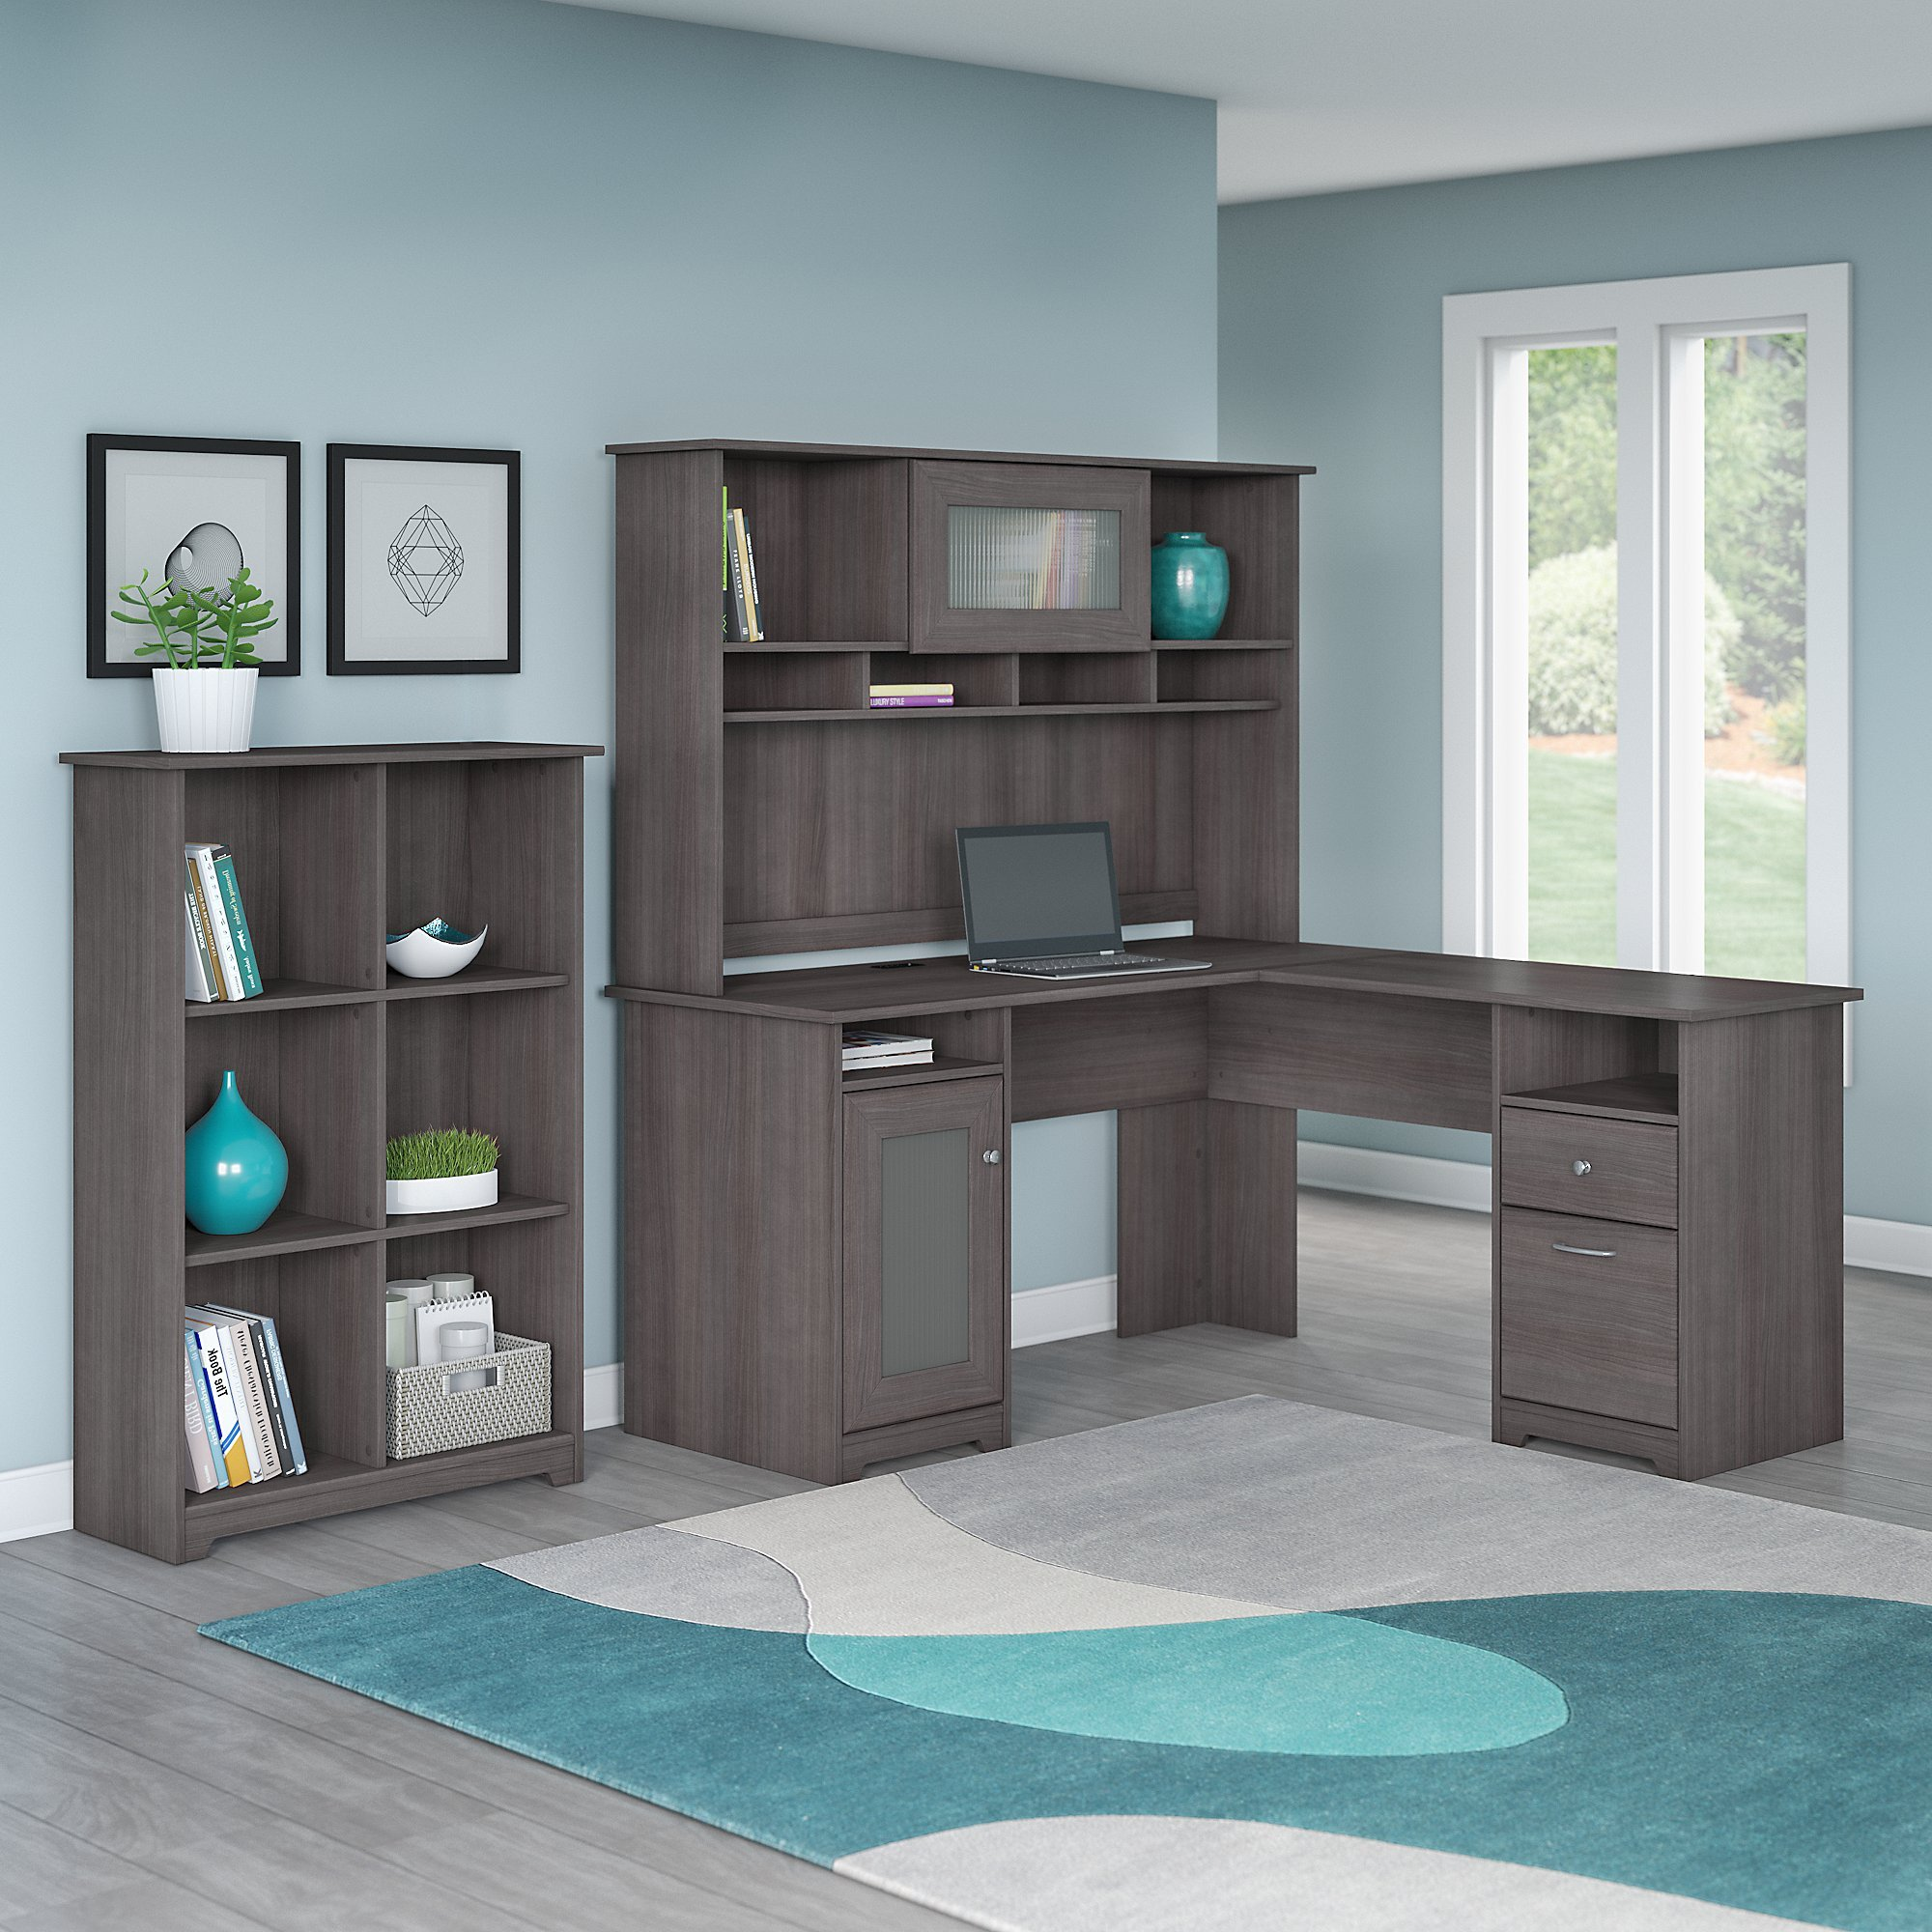 Bush Furniture Cabot L Shaped Desk with Hutch and 6 Cube Organizer in Heather Gray by Bush Furniture